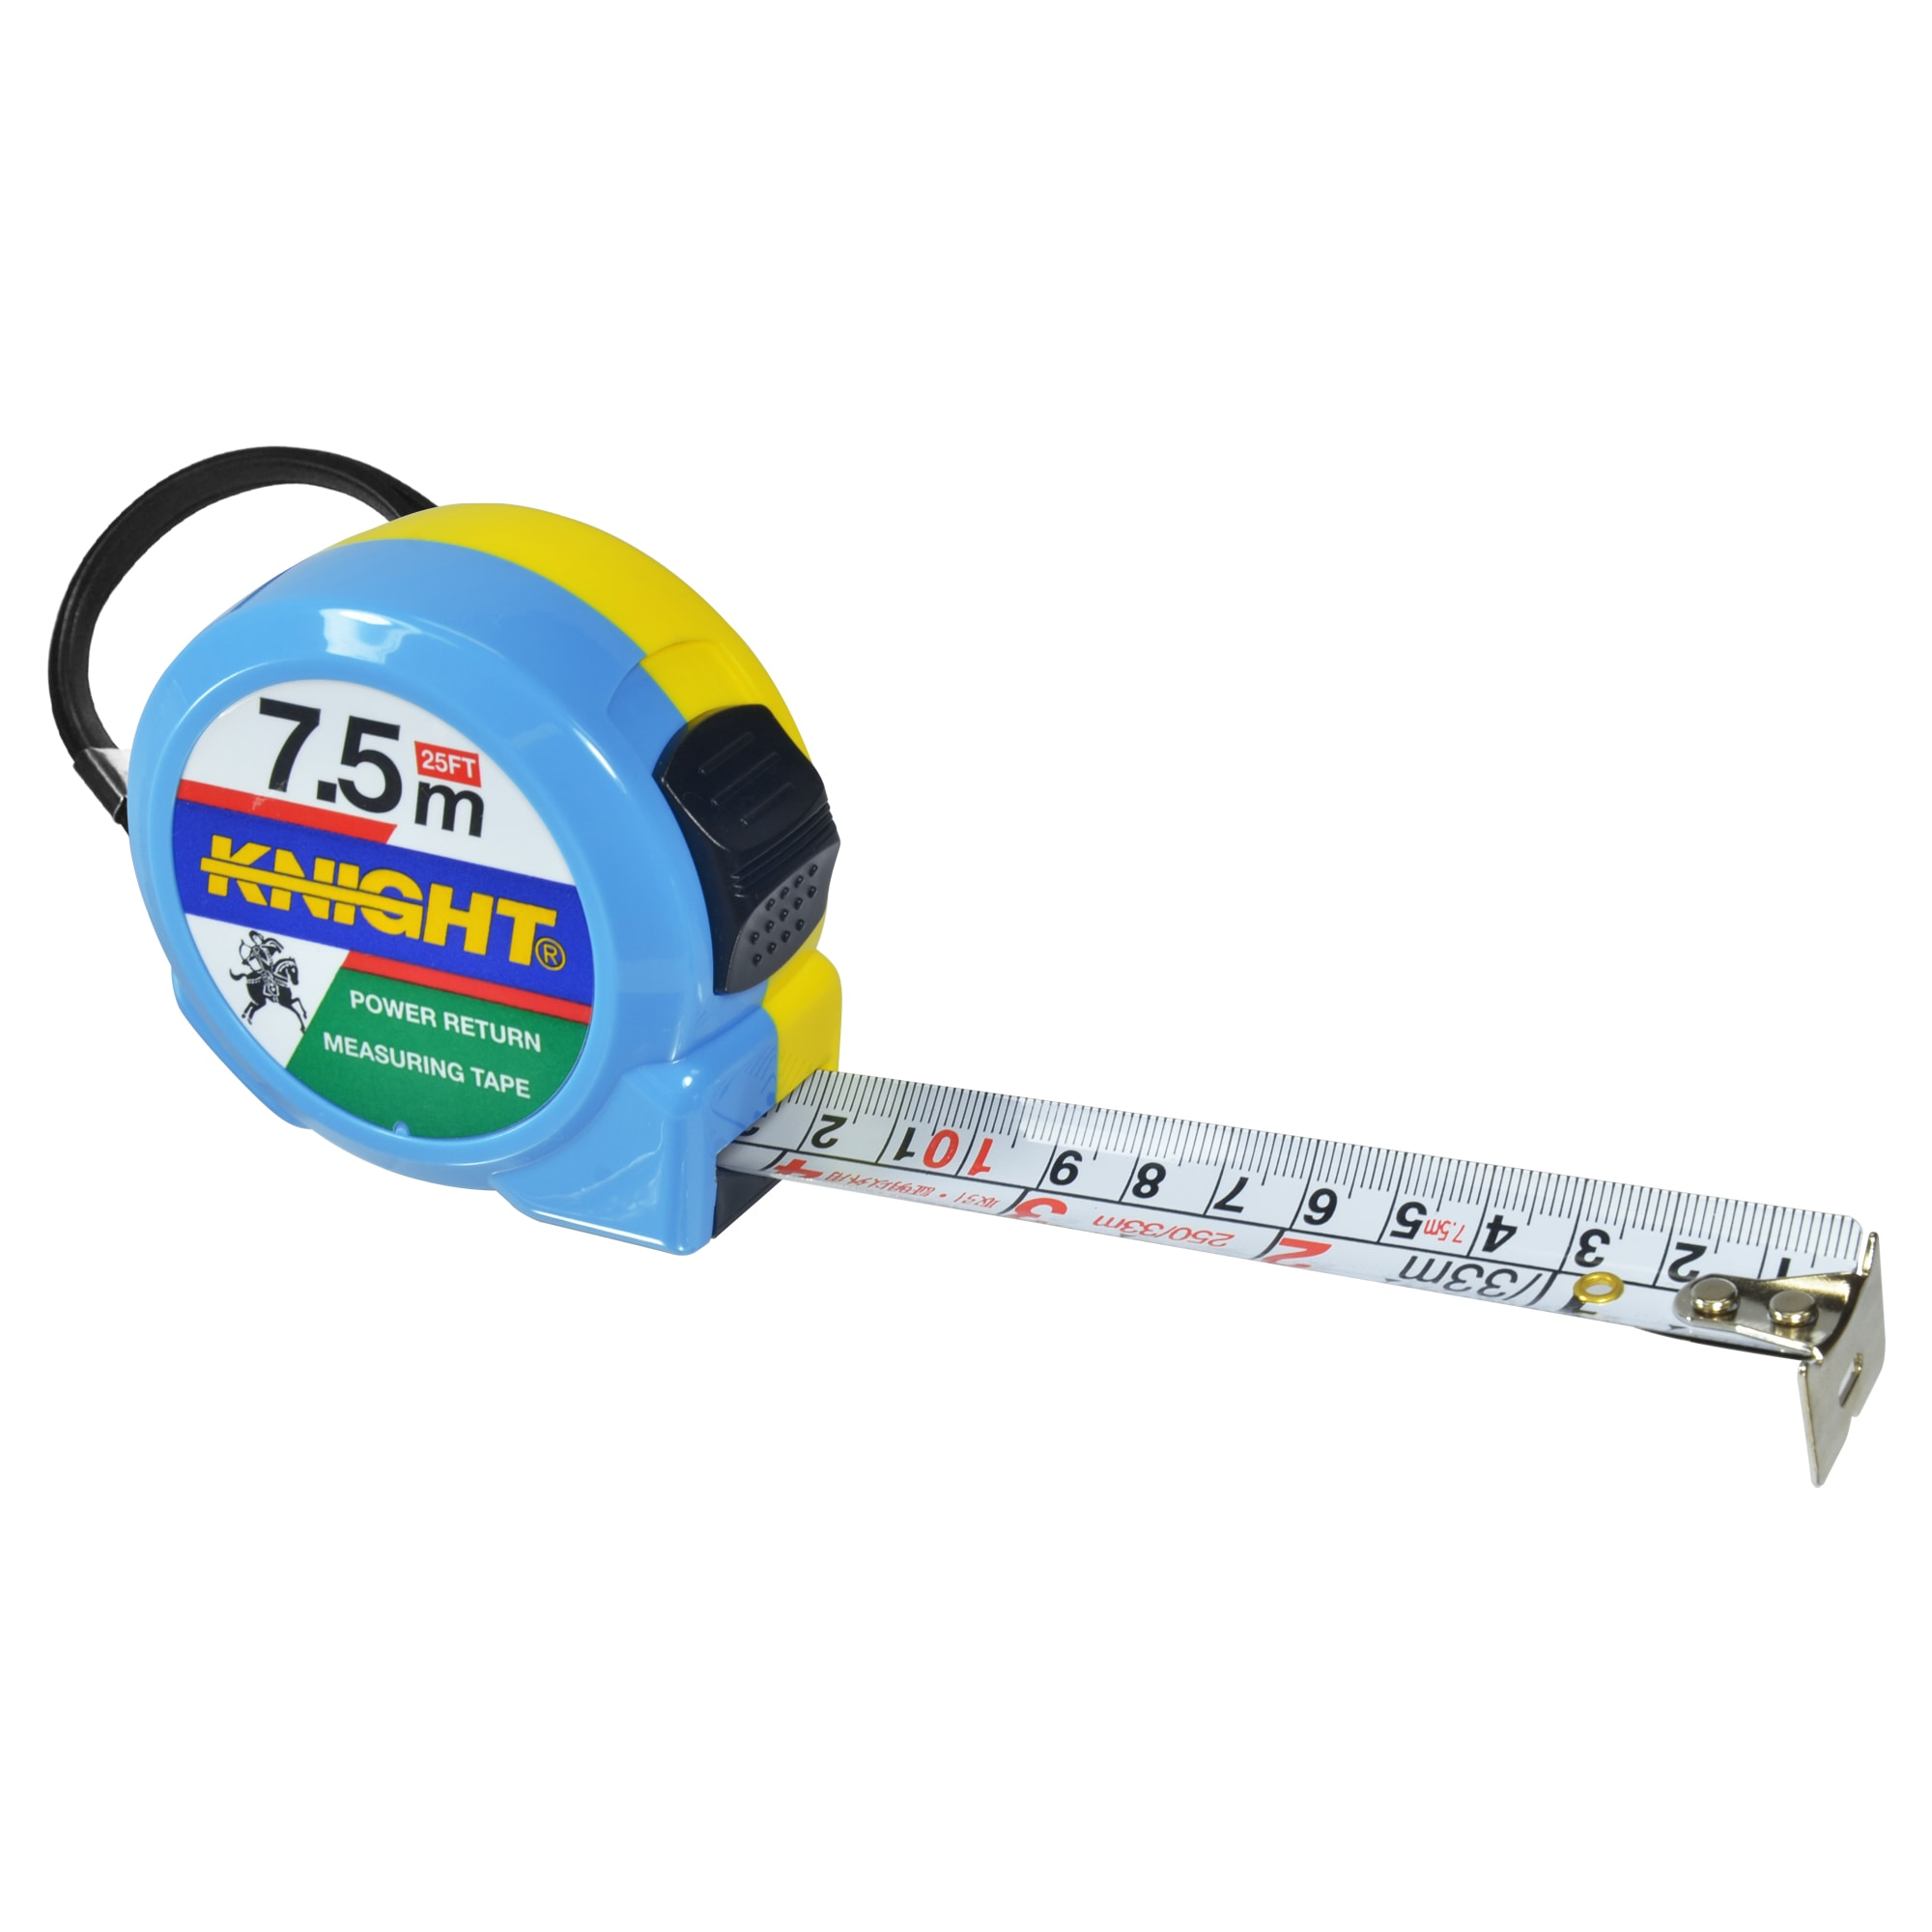 undersized tape measure; petite tape measure; toy tape measure; small-scale tape measure; little tape measure; mini tape measure; small tape measure; extra small tape measure; extra compact tape measure; compact tape measure; easy to carry tape measure